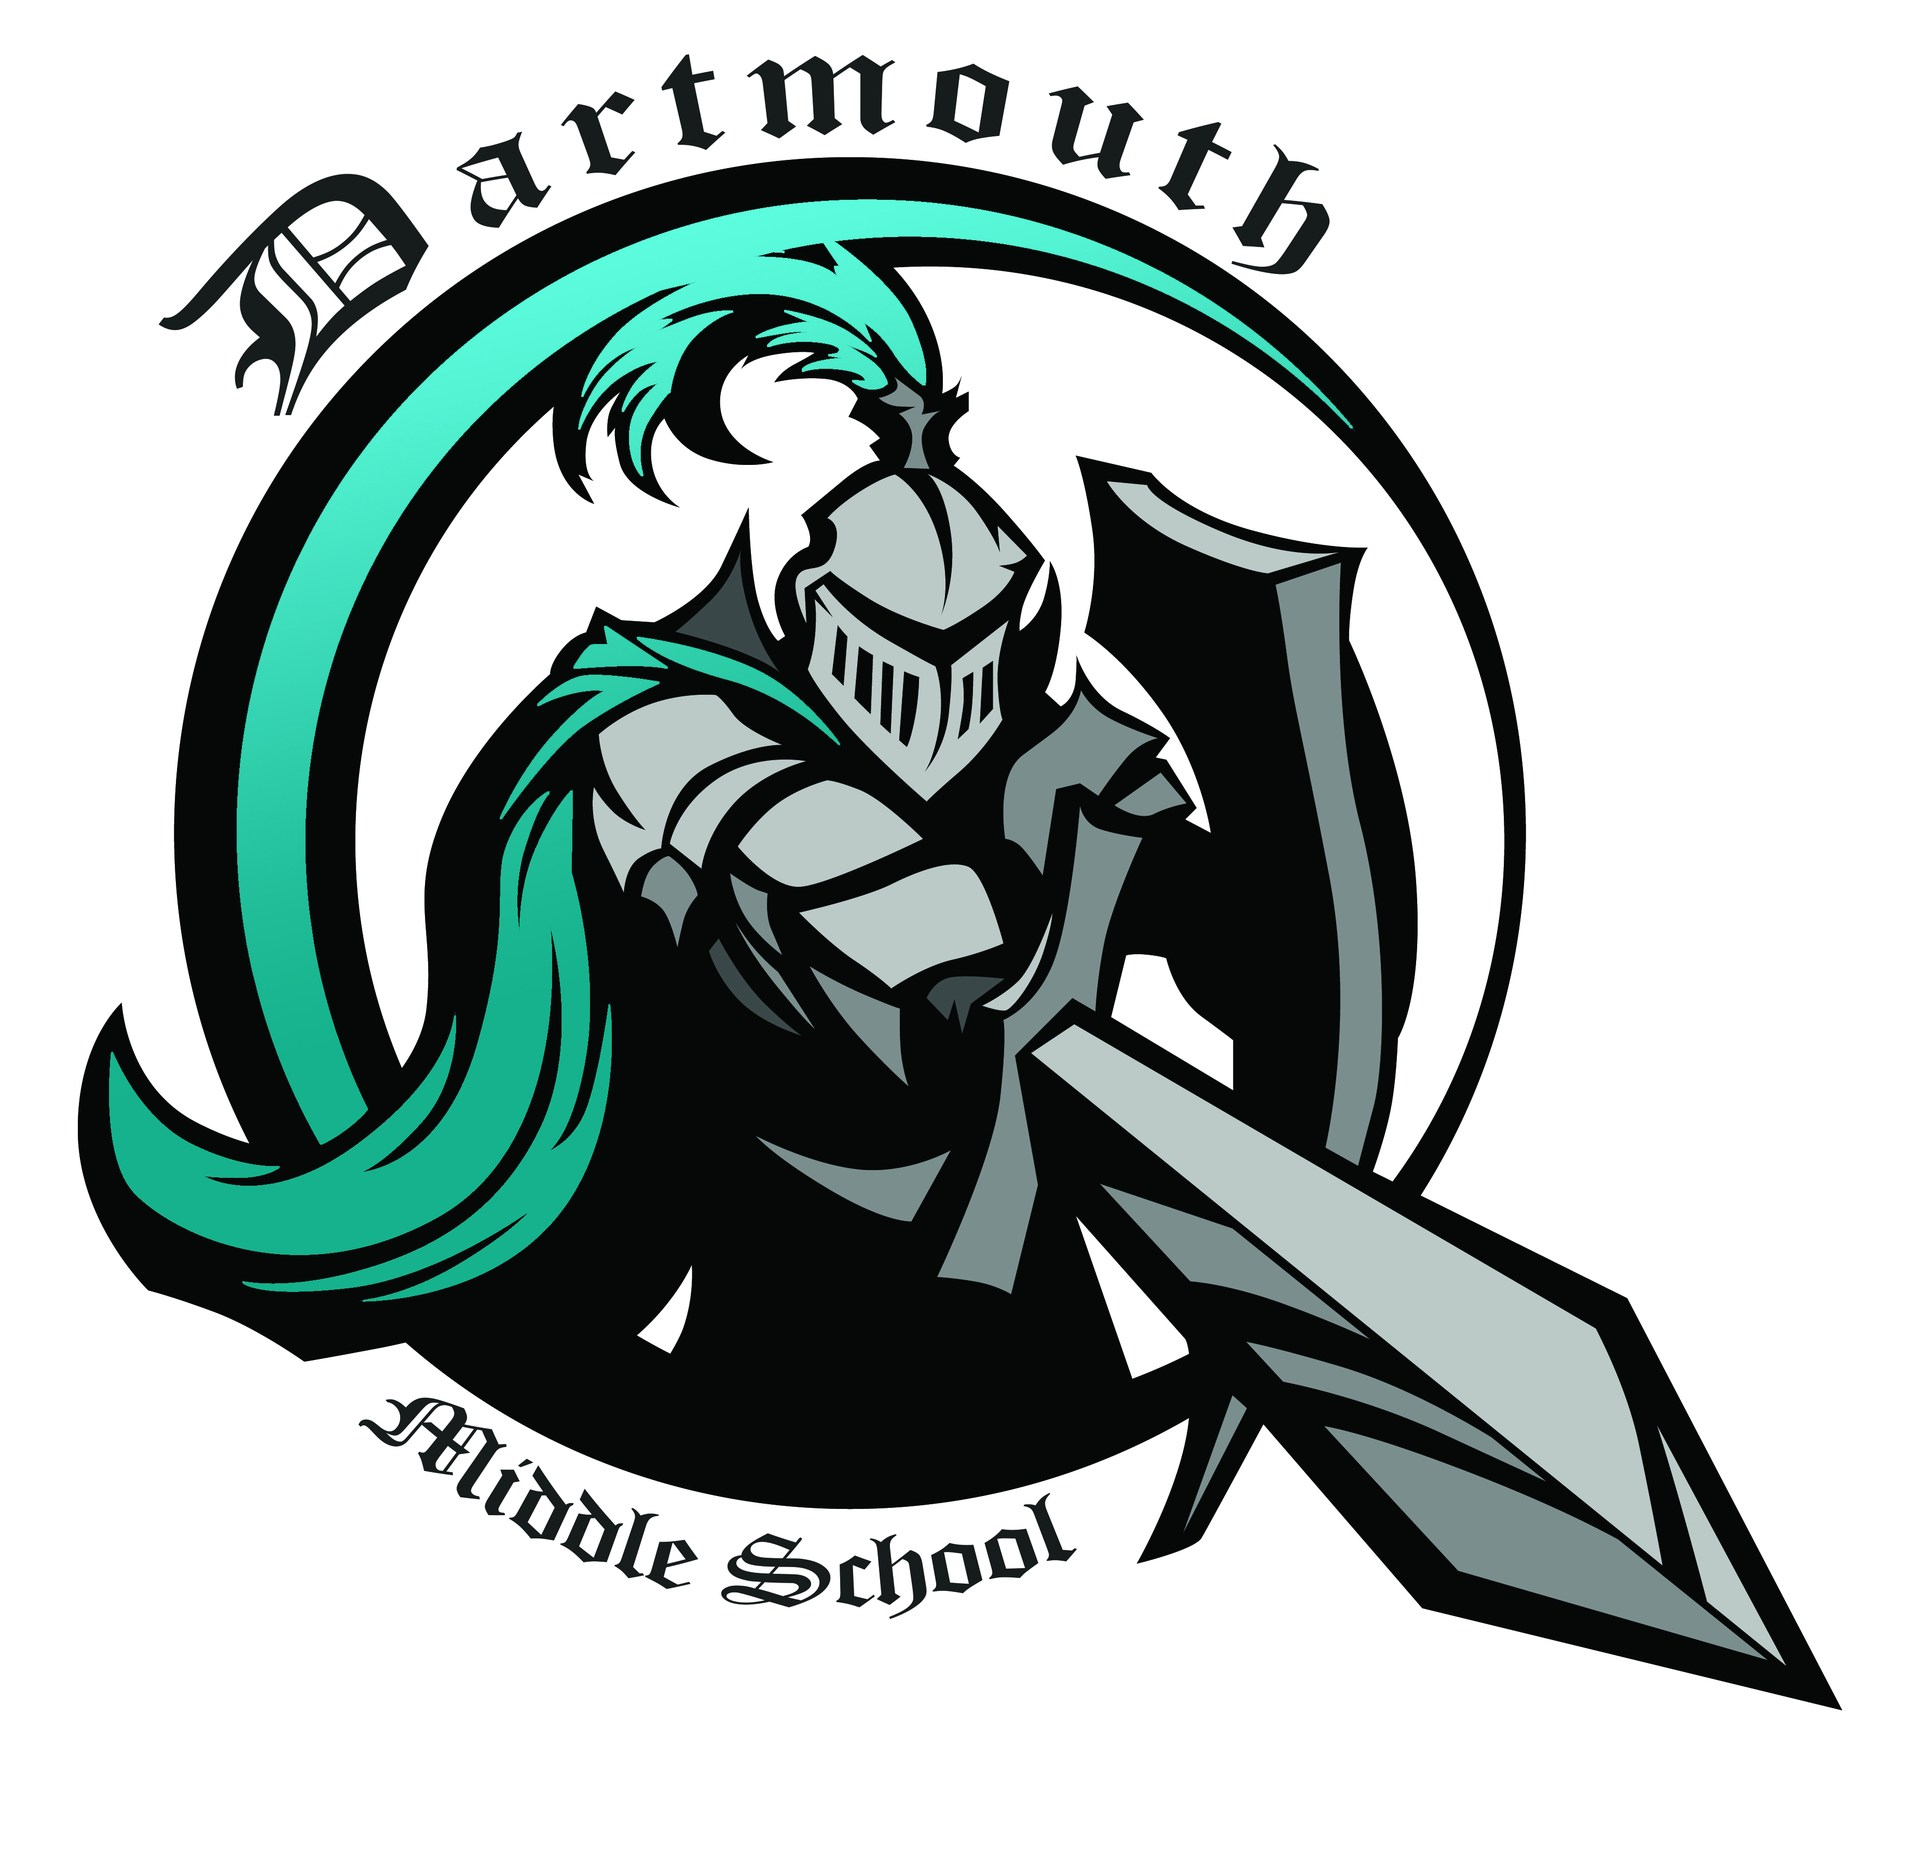 Dartmouth Knights